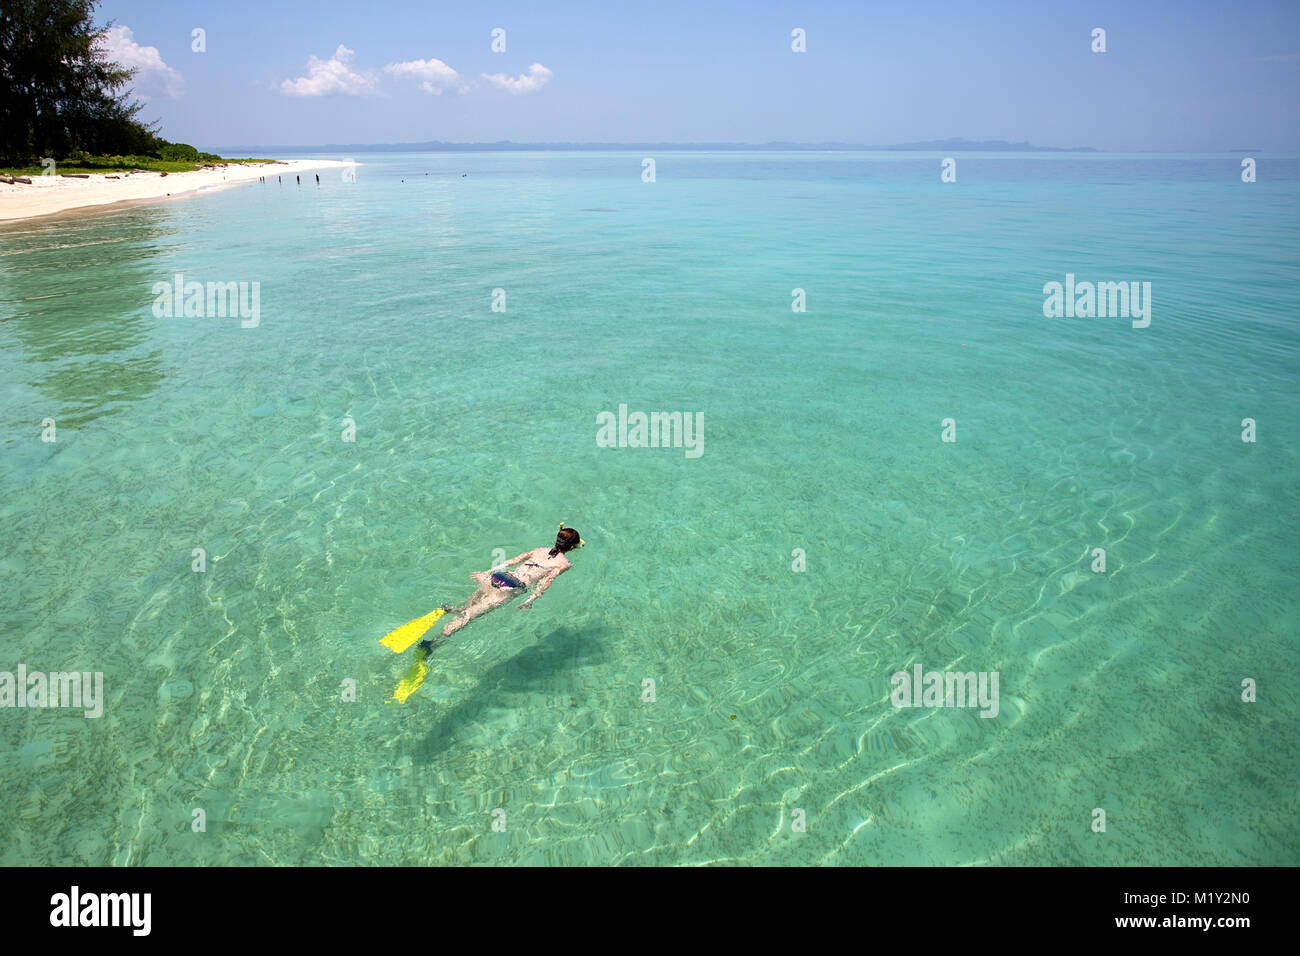 Woman snorkeling in turquoise blue sea Stock Photo